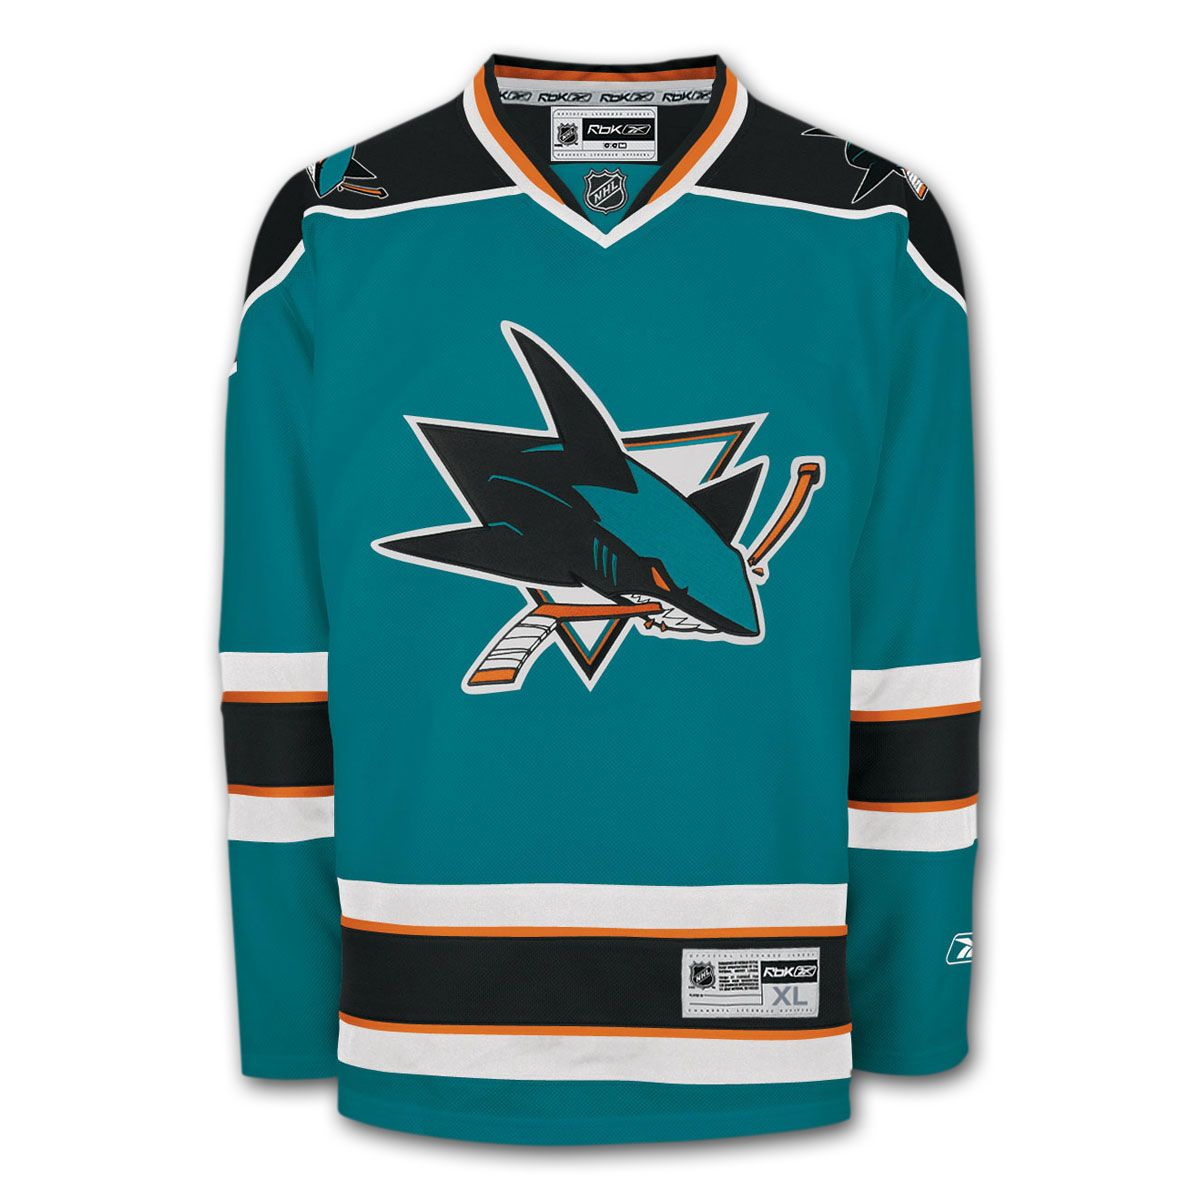 new style f4782 254bf San Jose Sharks Reebok Premier Replica Home NHL Hockey ...